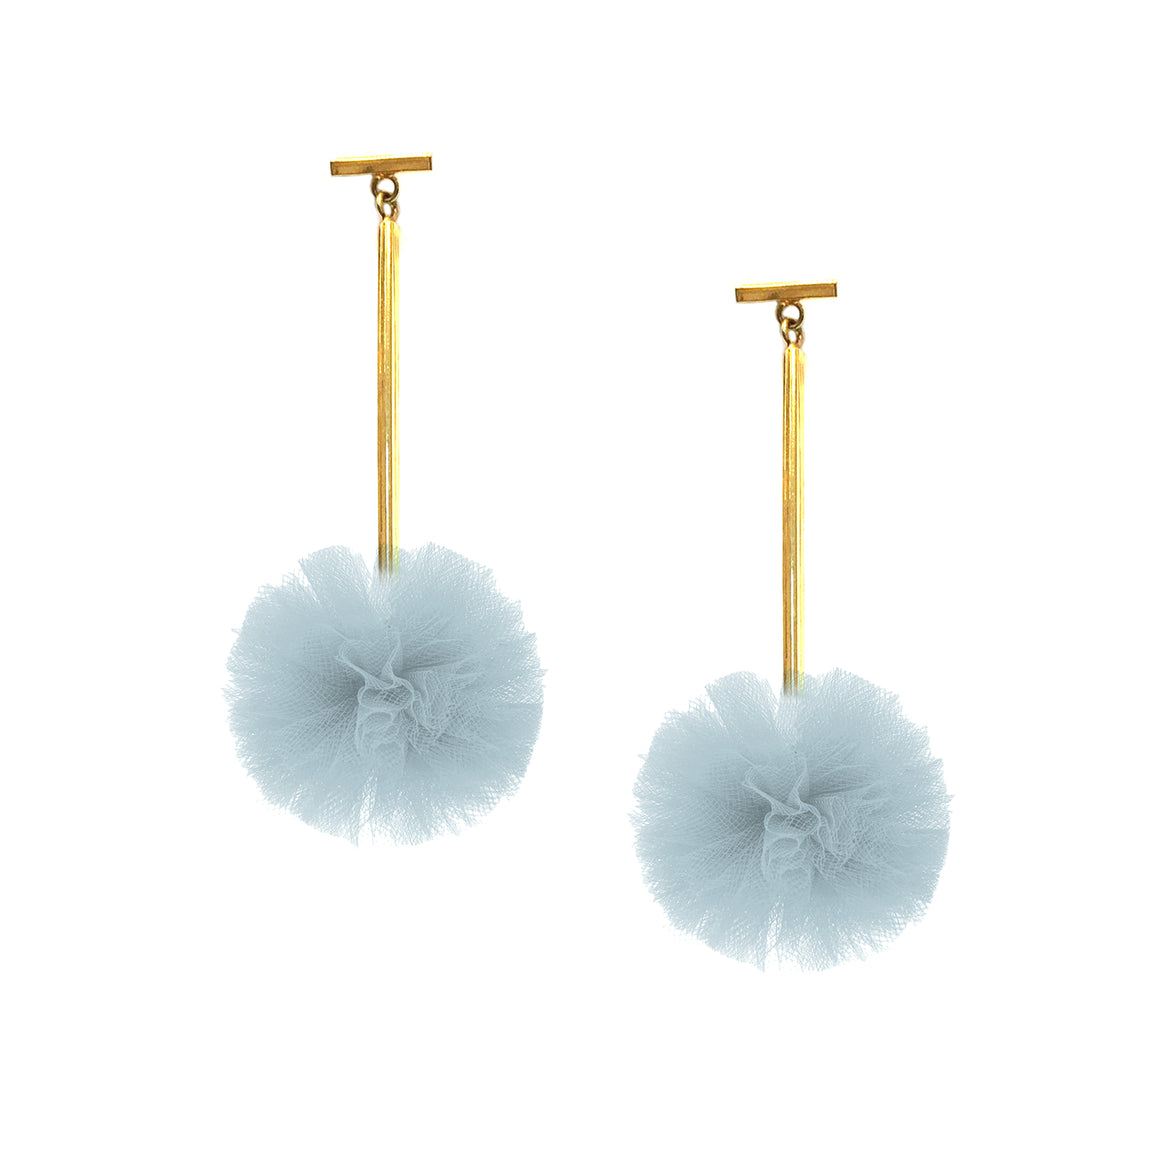 "Light Blue 1"" Tulle Pom Pom T Bar Earrings, Earrings, Tuleste, Tuleste"